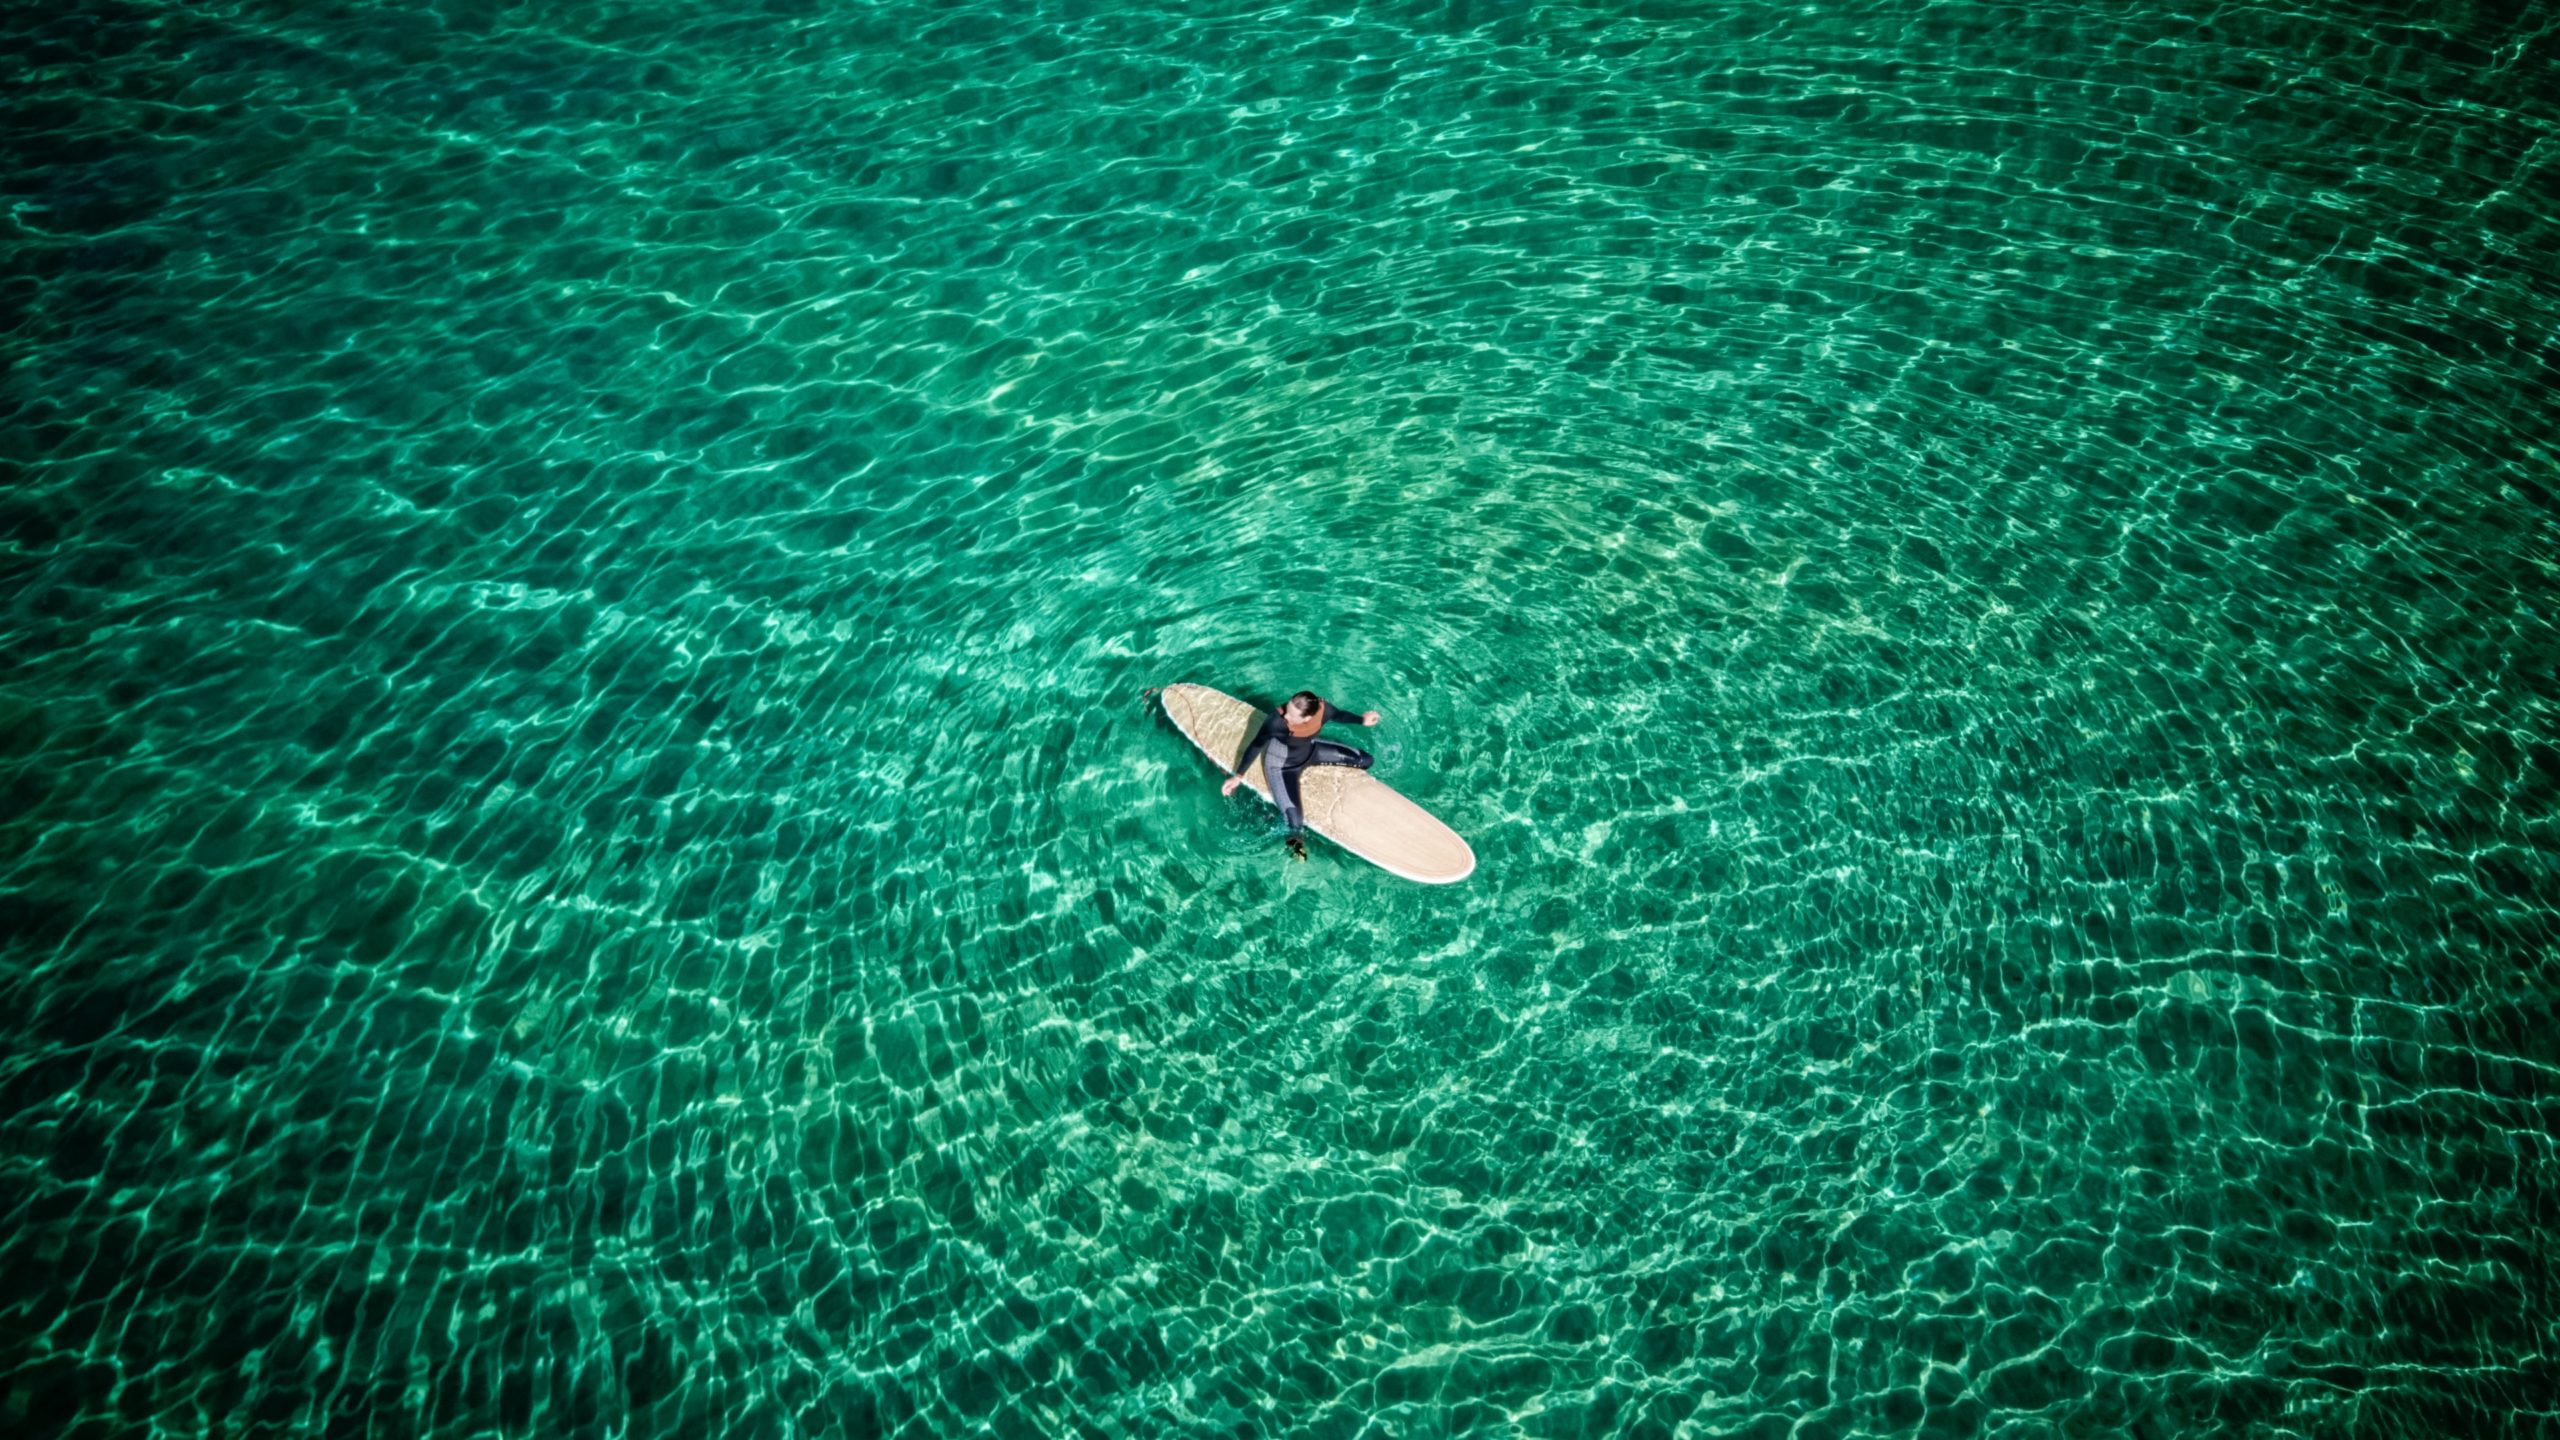 Unsere Top 9 Surfspots in Europa